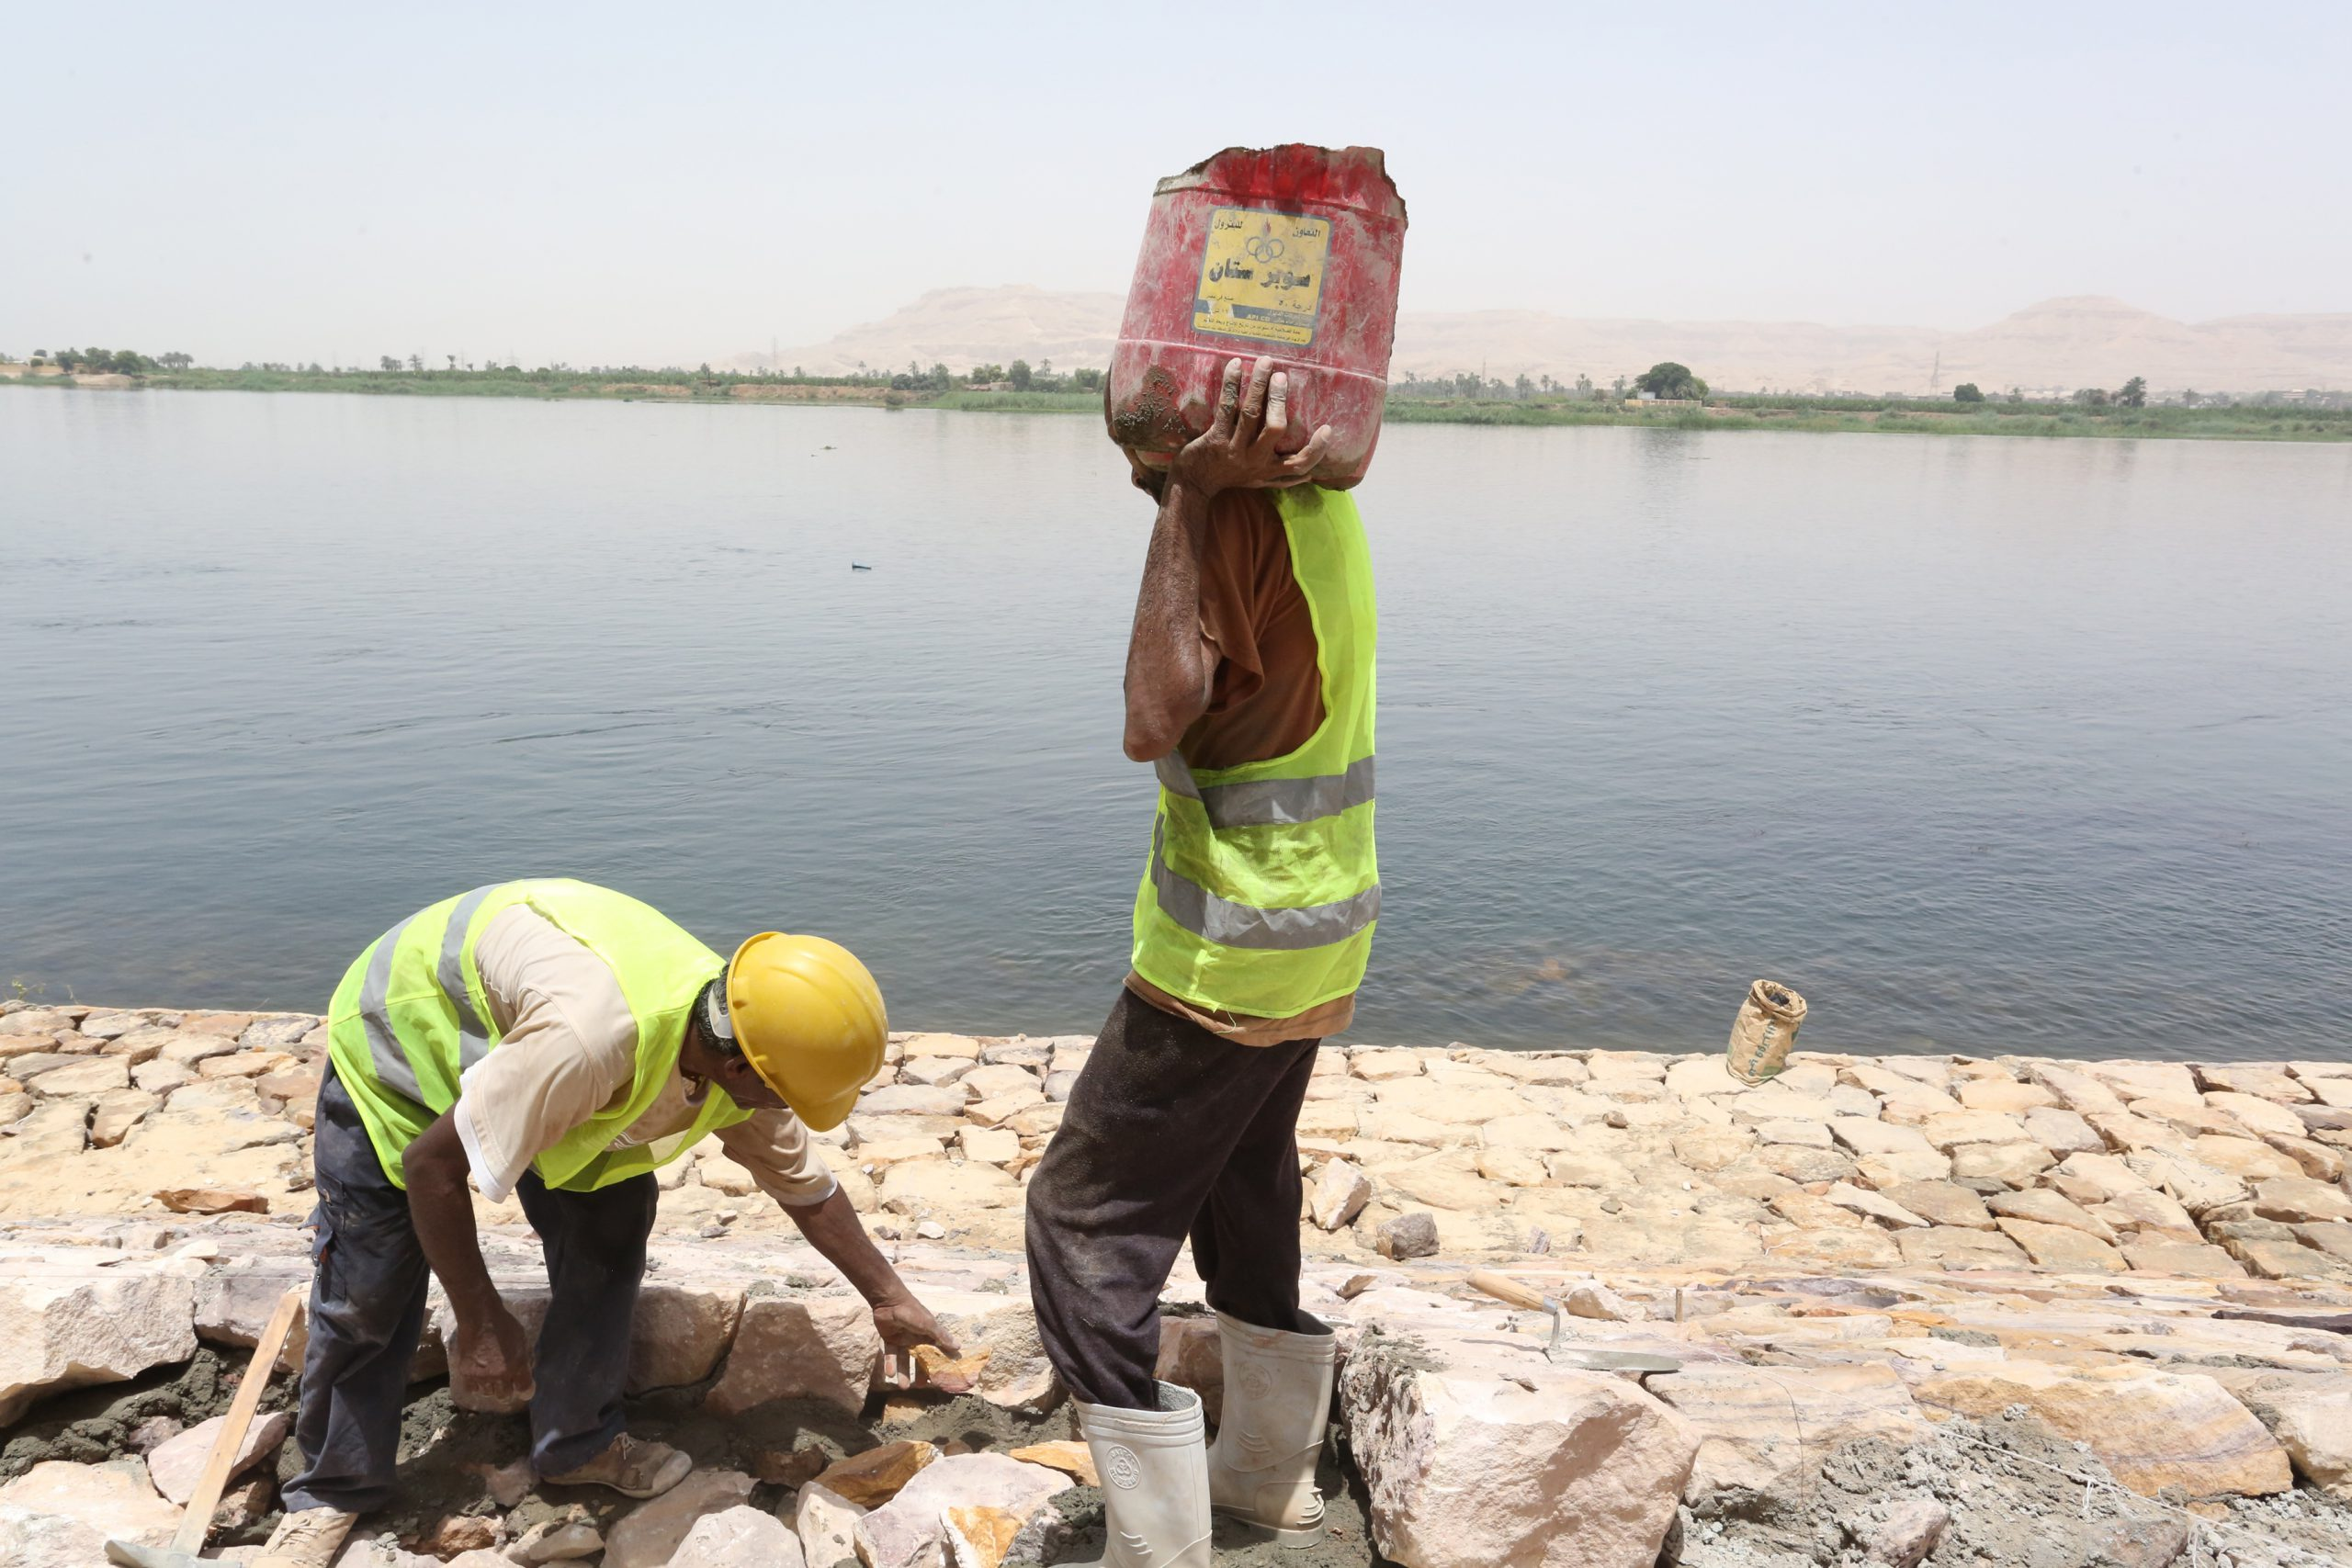 Construction workers are building stronger river banks along the Nile river to protect it from erosion, Egypt